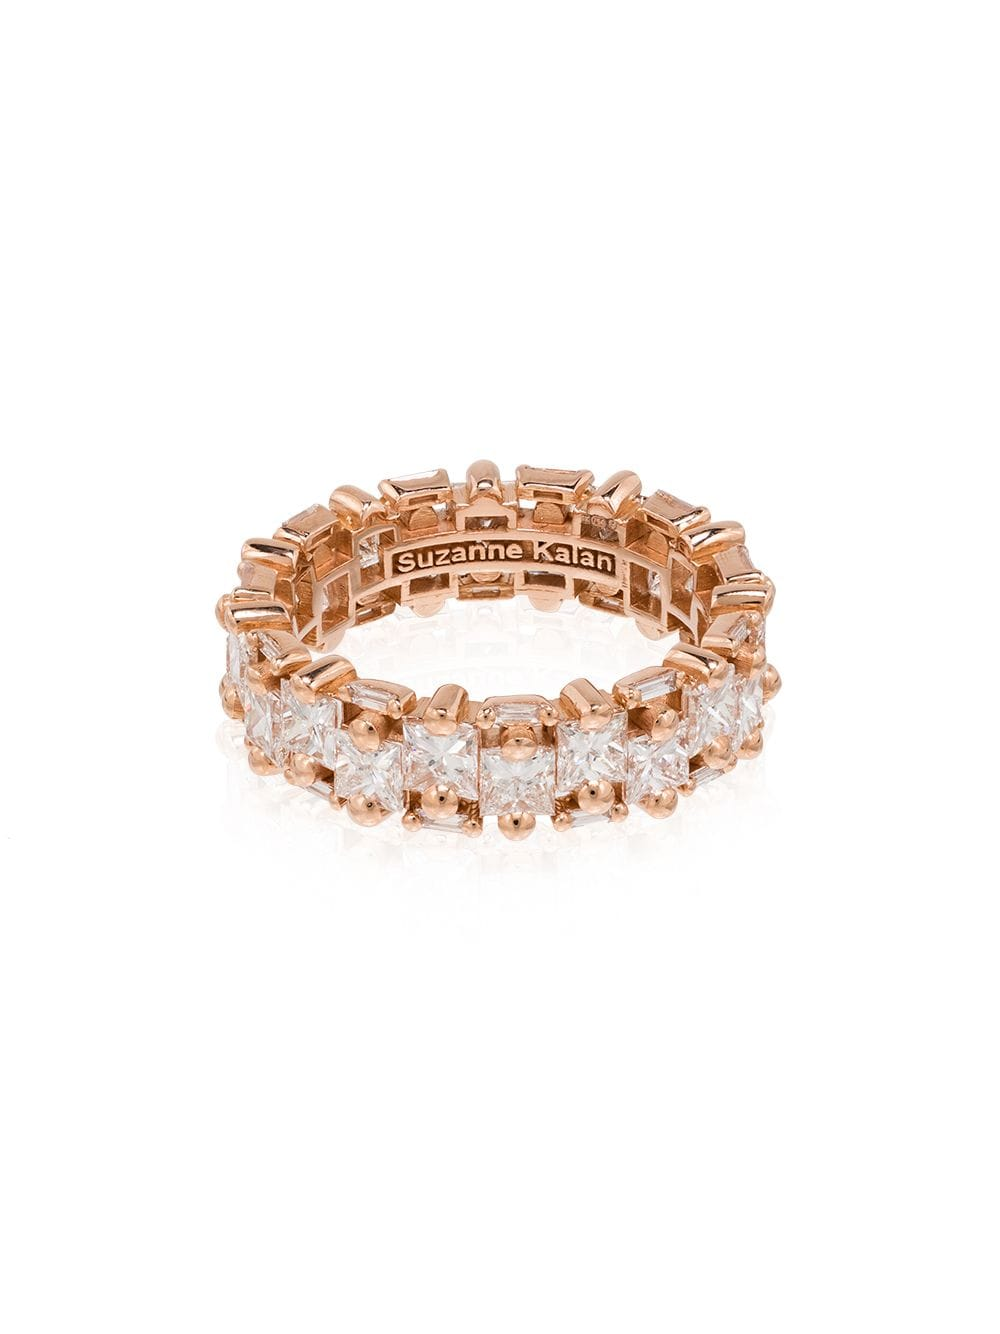 Suzanne Kalan 18kt rose gold diamond eternity ring von Suzanne Kalan